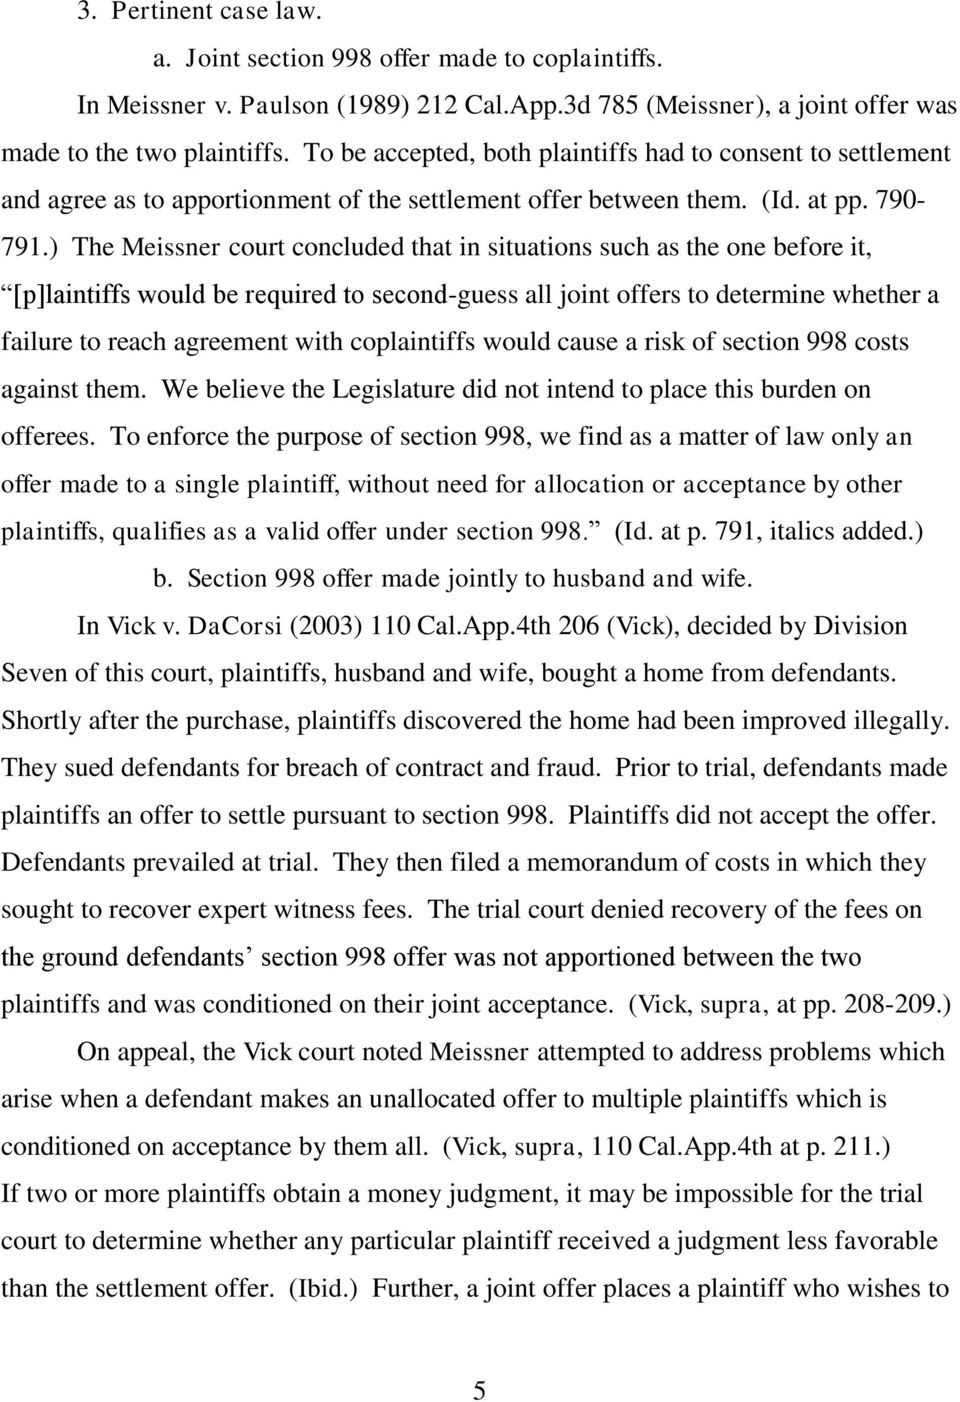 ) The Meissner court concluded that in situations such as the one before it, [p]laintiffs would be required to second-guess all joint offers to determine whether a failure to reach agreement with